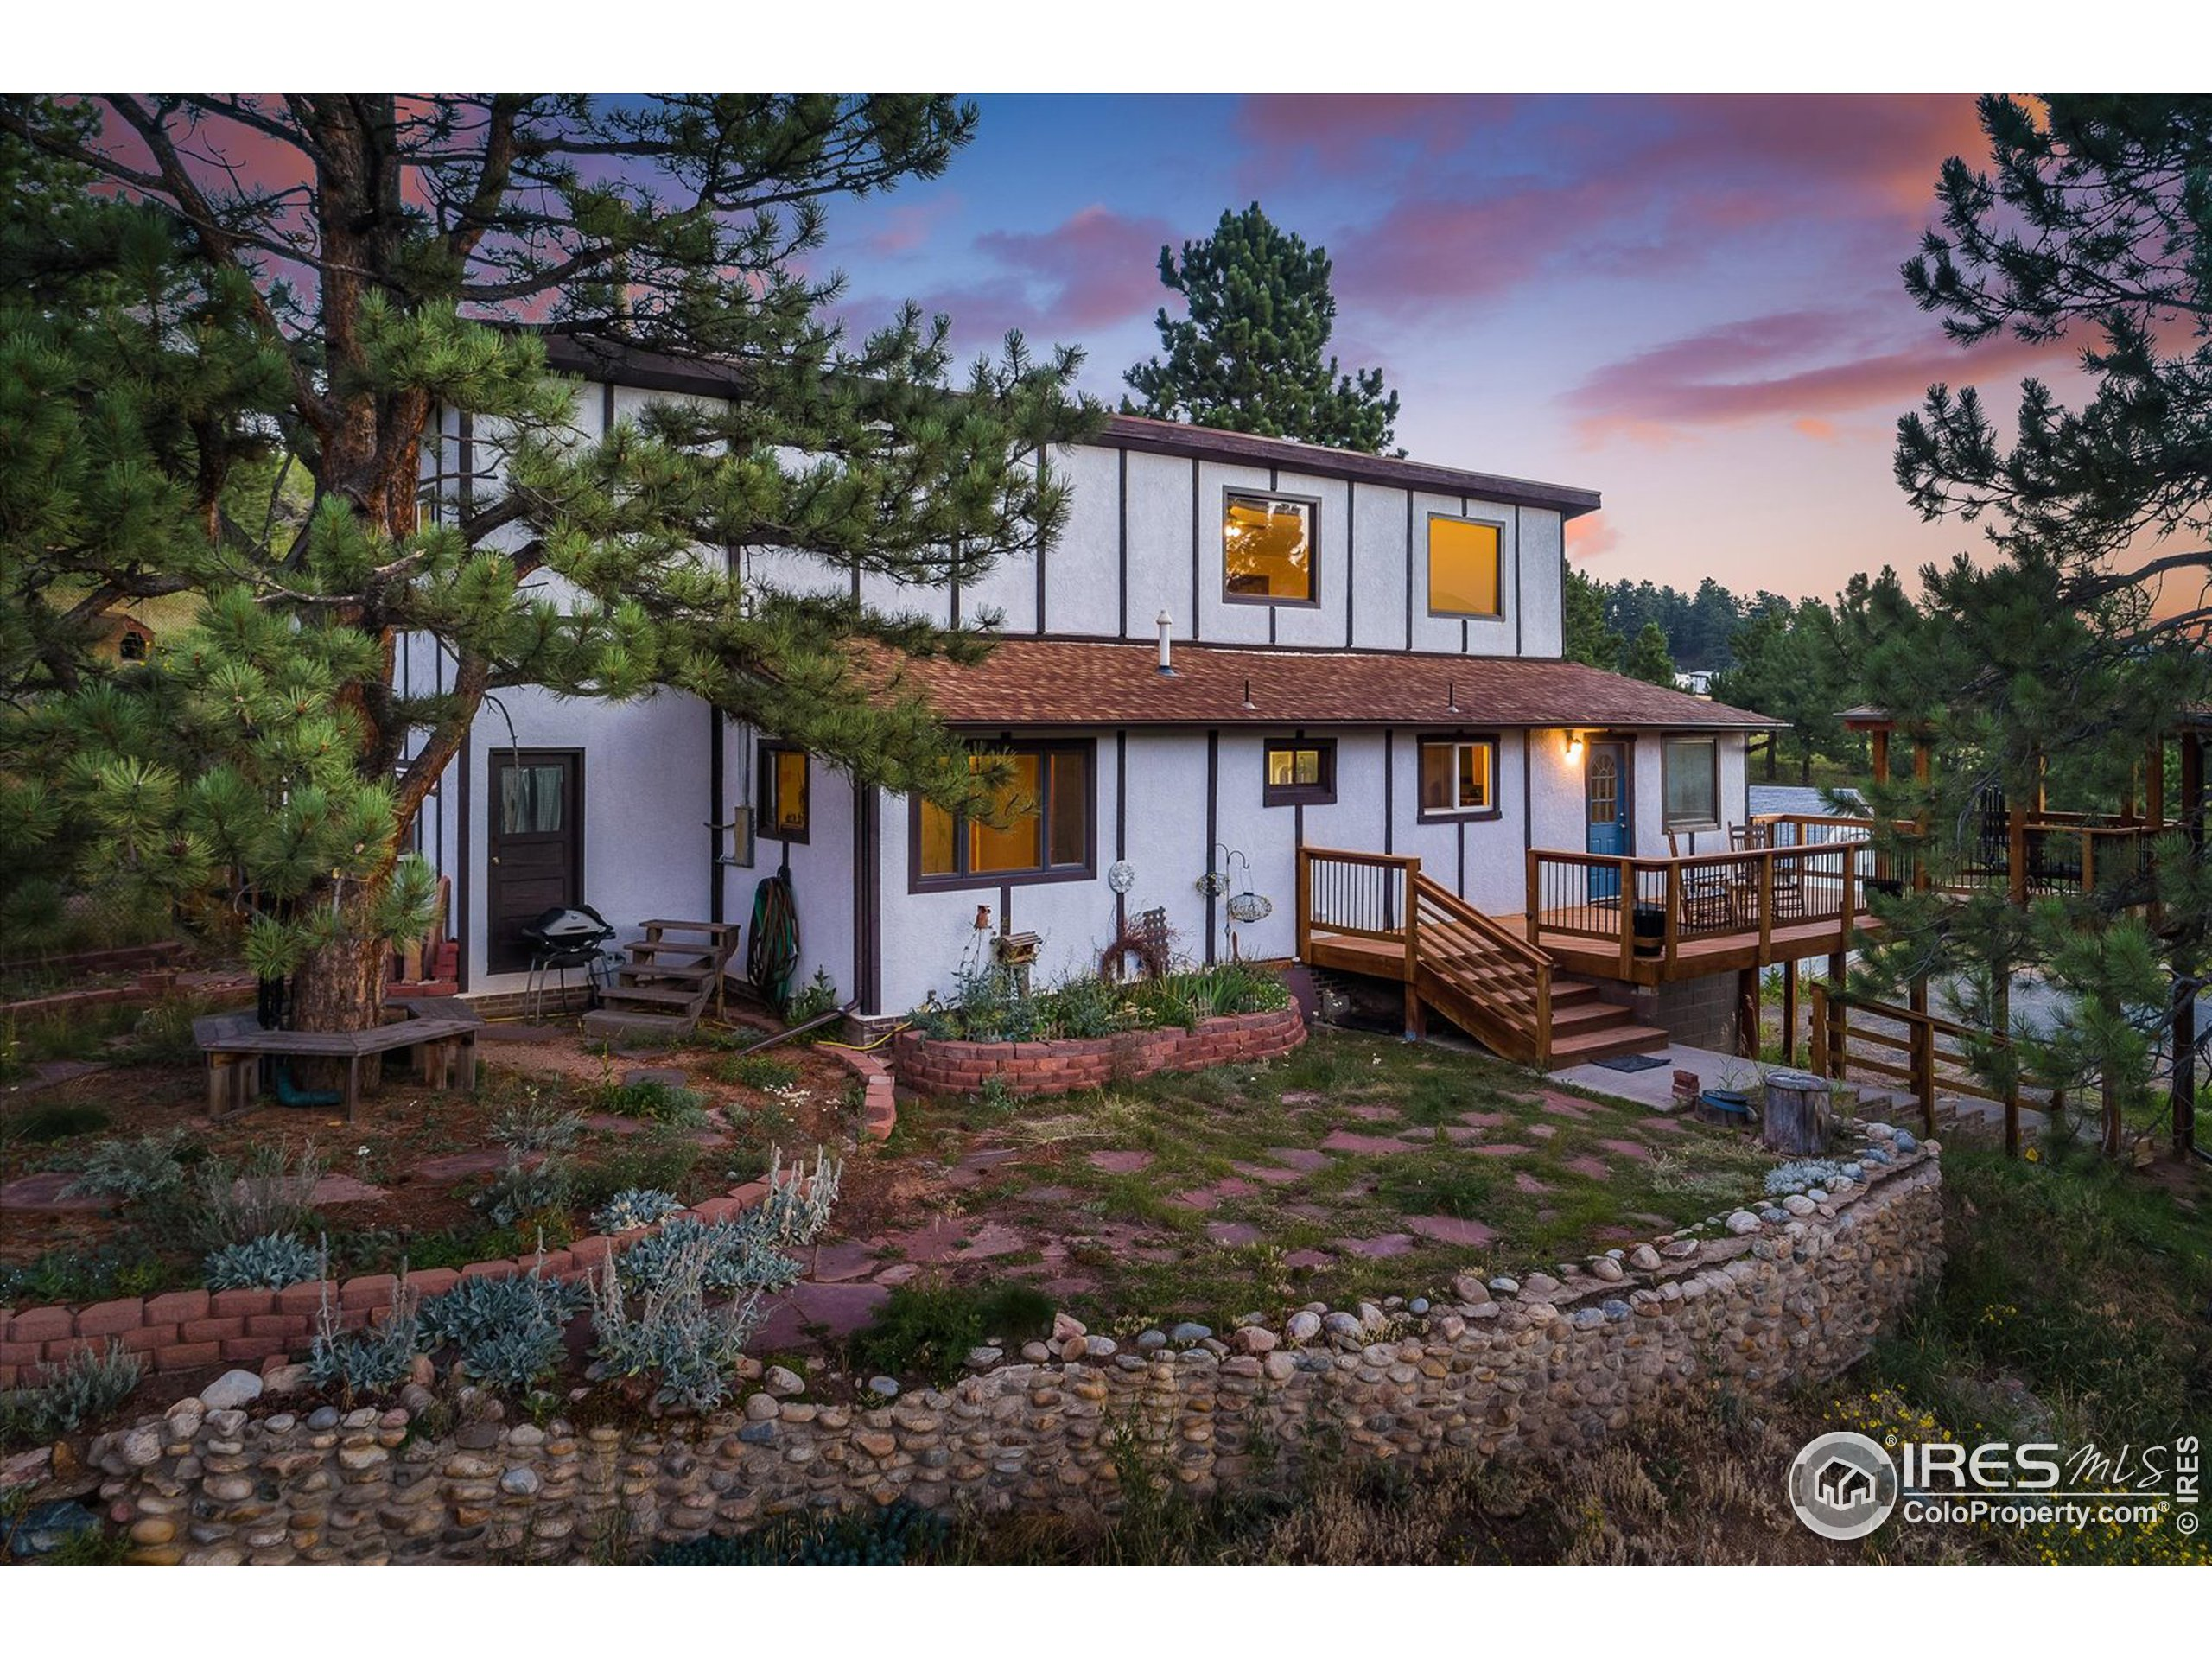 CO Mountain Hm nestled among the Evergreens. Front steps lead to lrg deck & Gazebo(great for your morning coffee)overlooking evergreens & flower filled meadows below. This hm-featuring laminate flrs, vaulted ceilings & beautiful flr to ceiling brick gas fireplace. Separate din area & remodeled kitch w/newer appls, corian cntertops & cntr seating greet you as you enter. Down the hall: 2 beds, shared full ba, laundry area w/antique laundry tub. Mid upper lvl w/lrg living rm accented w/gas fplc & built-ins for movie watching. Retire to en-suite primary rm w/3/4 remodel ba. French doors lead to private patio. Upper lvl- 2 flex areas-great for office, exercise rm-so many possibilities. Work from hm w/Century Link fiber optics-stay connected. Gazebo&decks for BBQ's&star gazing. Enjoy fenced area w/greenhouse, grow your all your favorites & chicken coop. Cnty maintained rds. Easy access Dnvr/Bldr/Golden, Eldora Ski Resort & Gross Dam Res. This home invites you to play where you live.